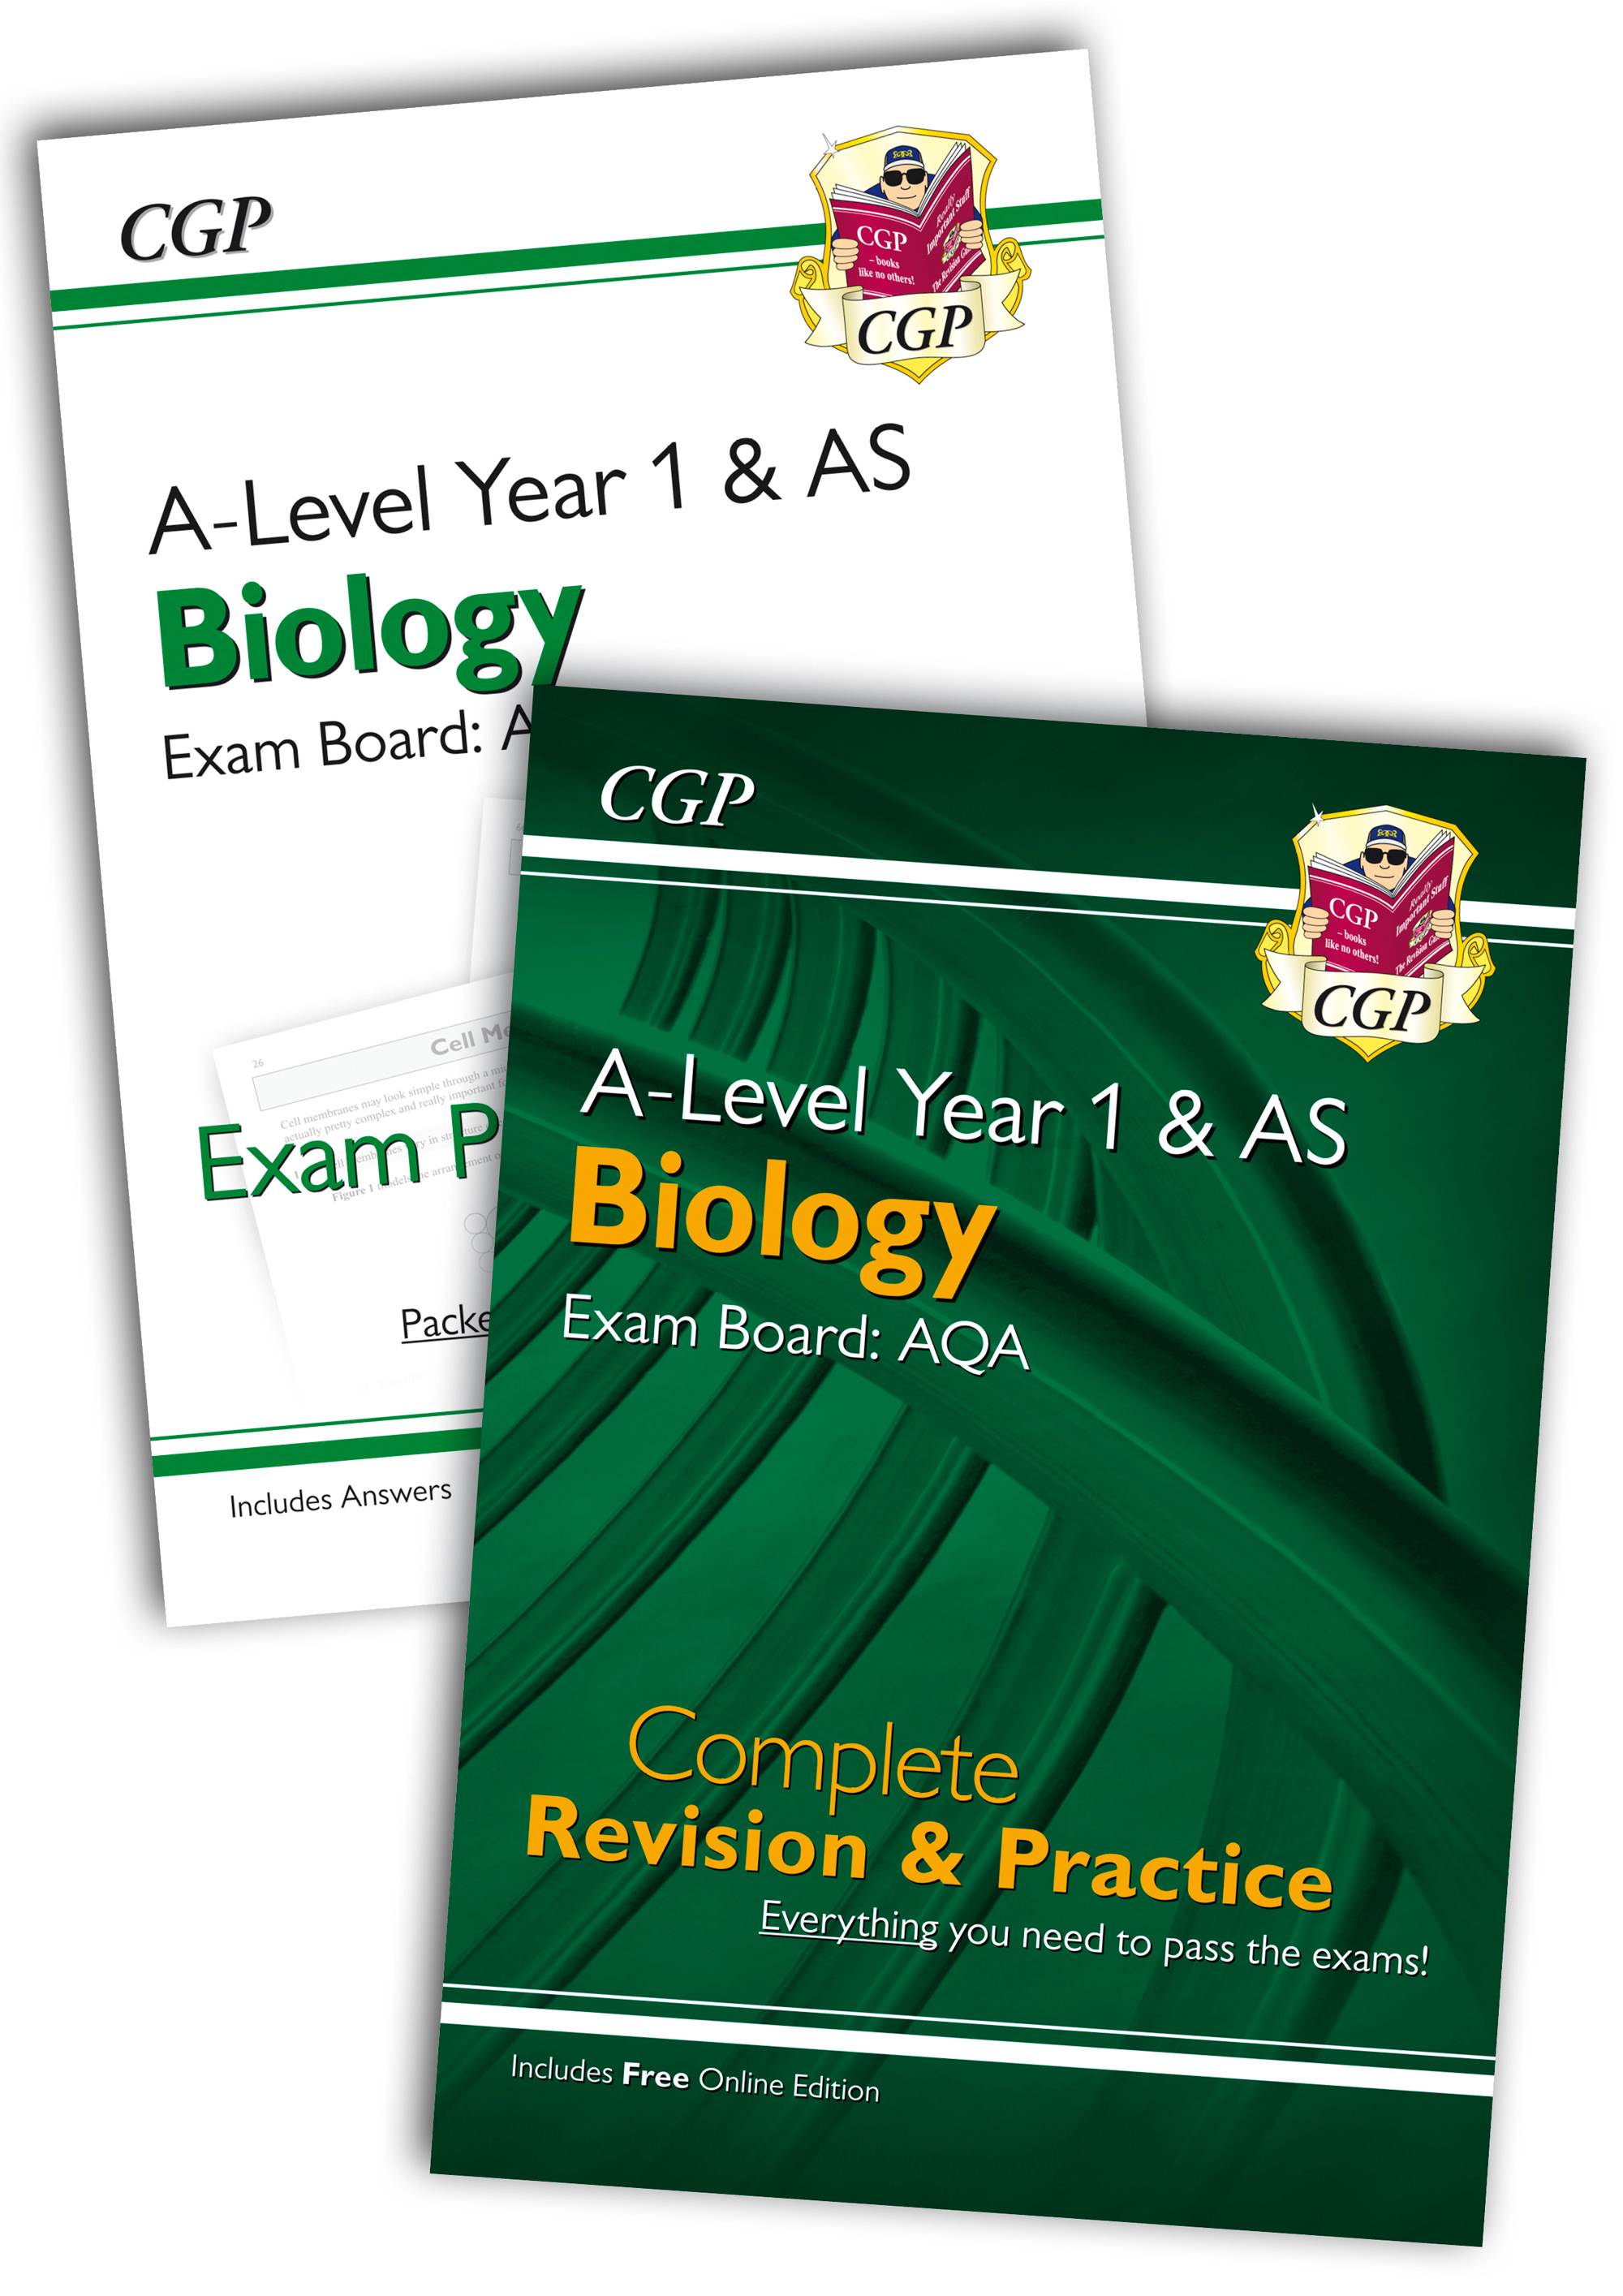 BARQB51 - New 2018 Complete Revision and Exam Practice A-Level Biology Bundle: AQA Year 1 & AS